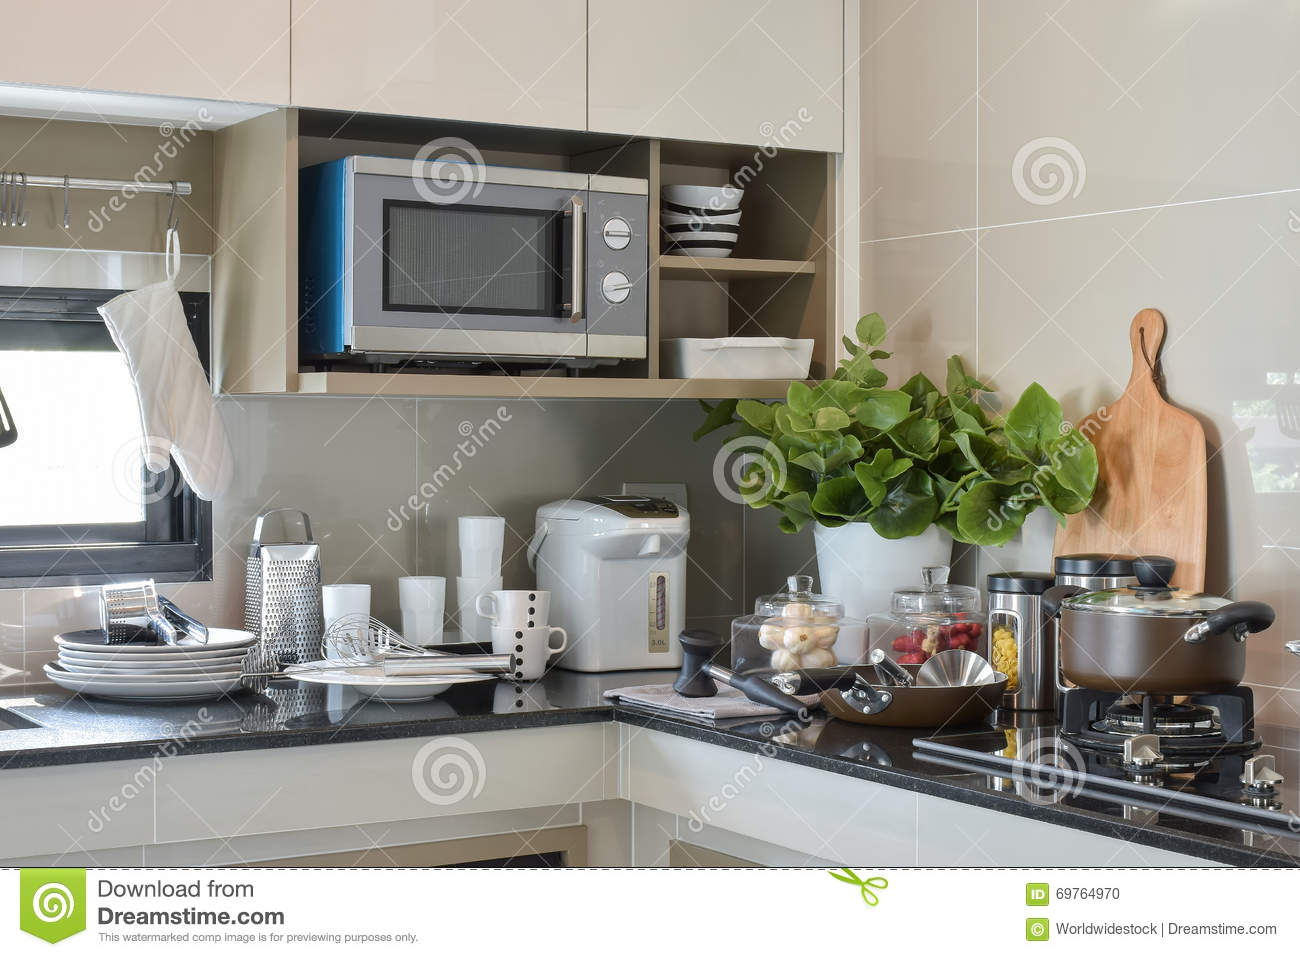 Ceramic Ware And Kitchen Ware Setting Up On The Counter